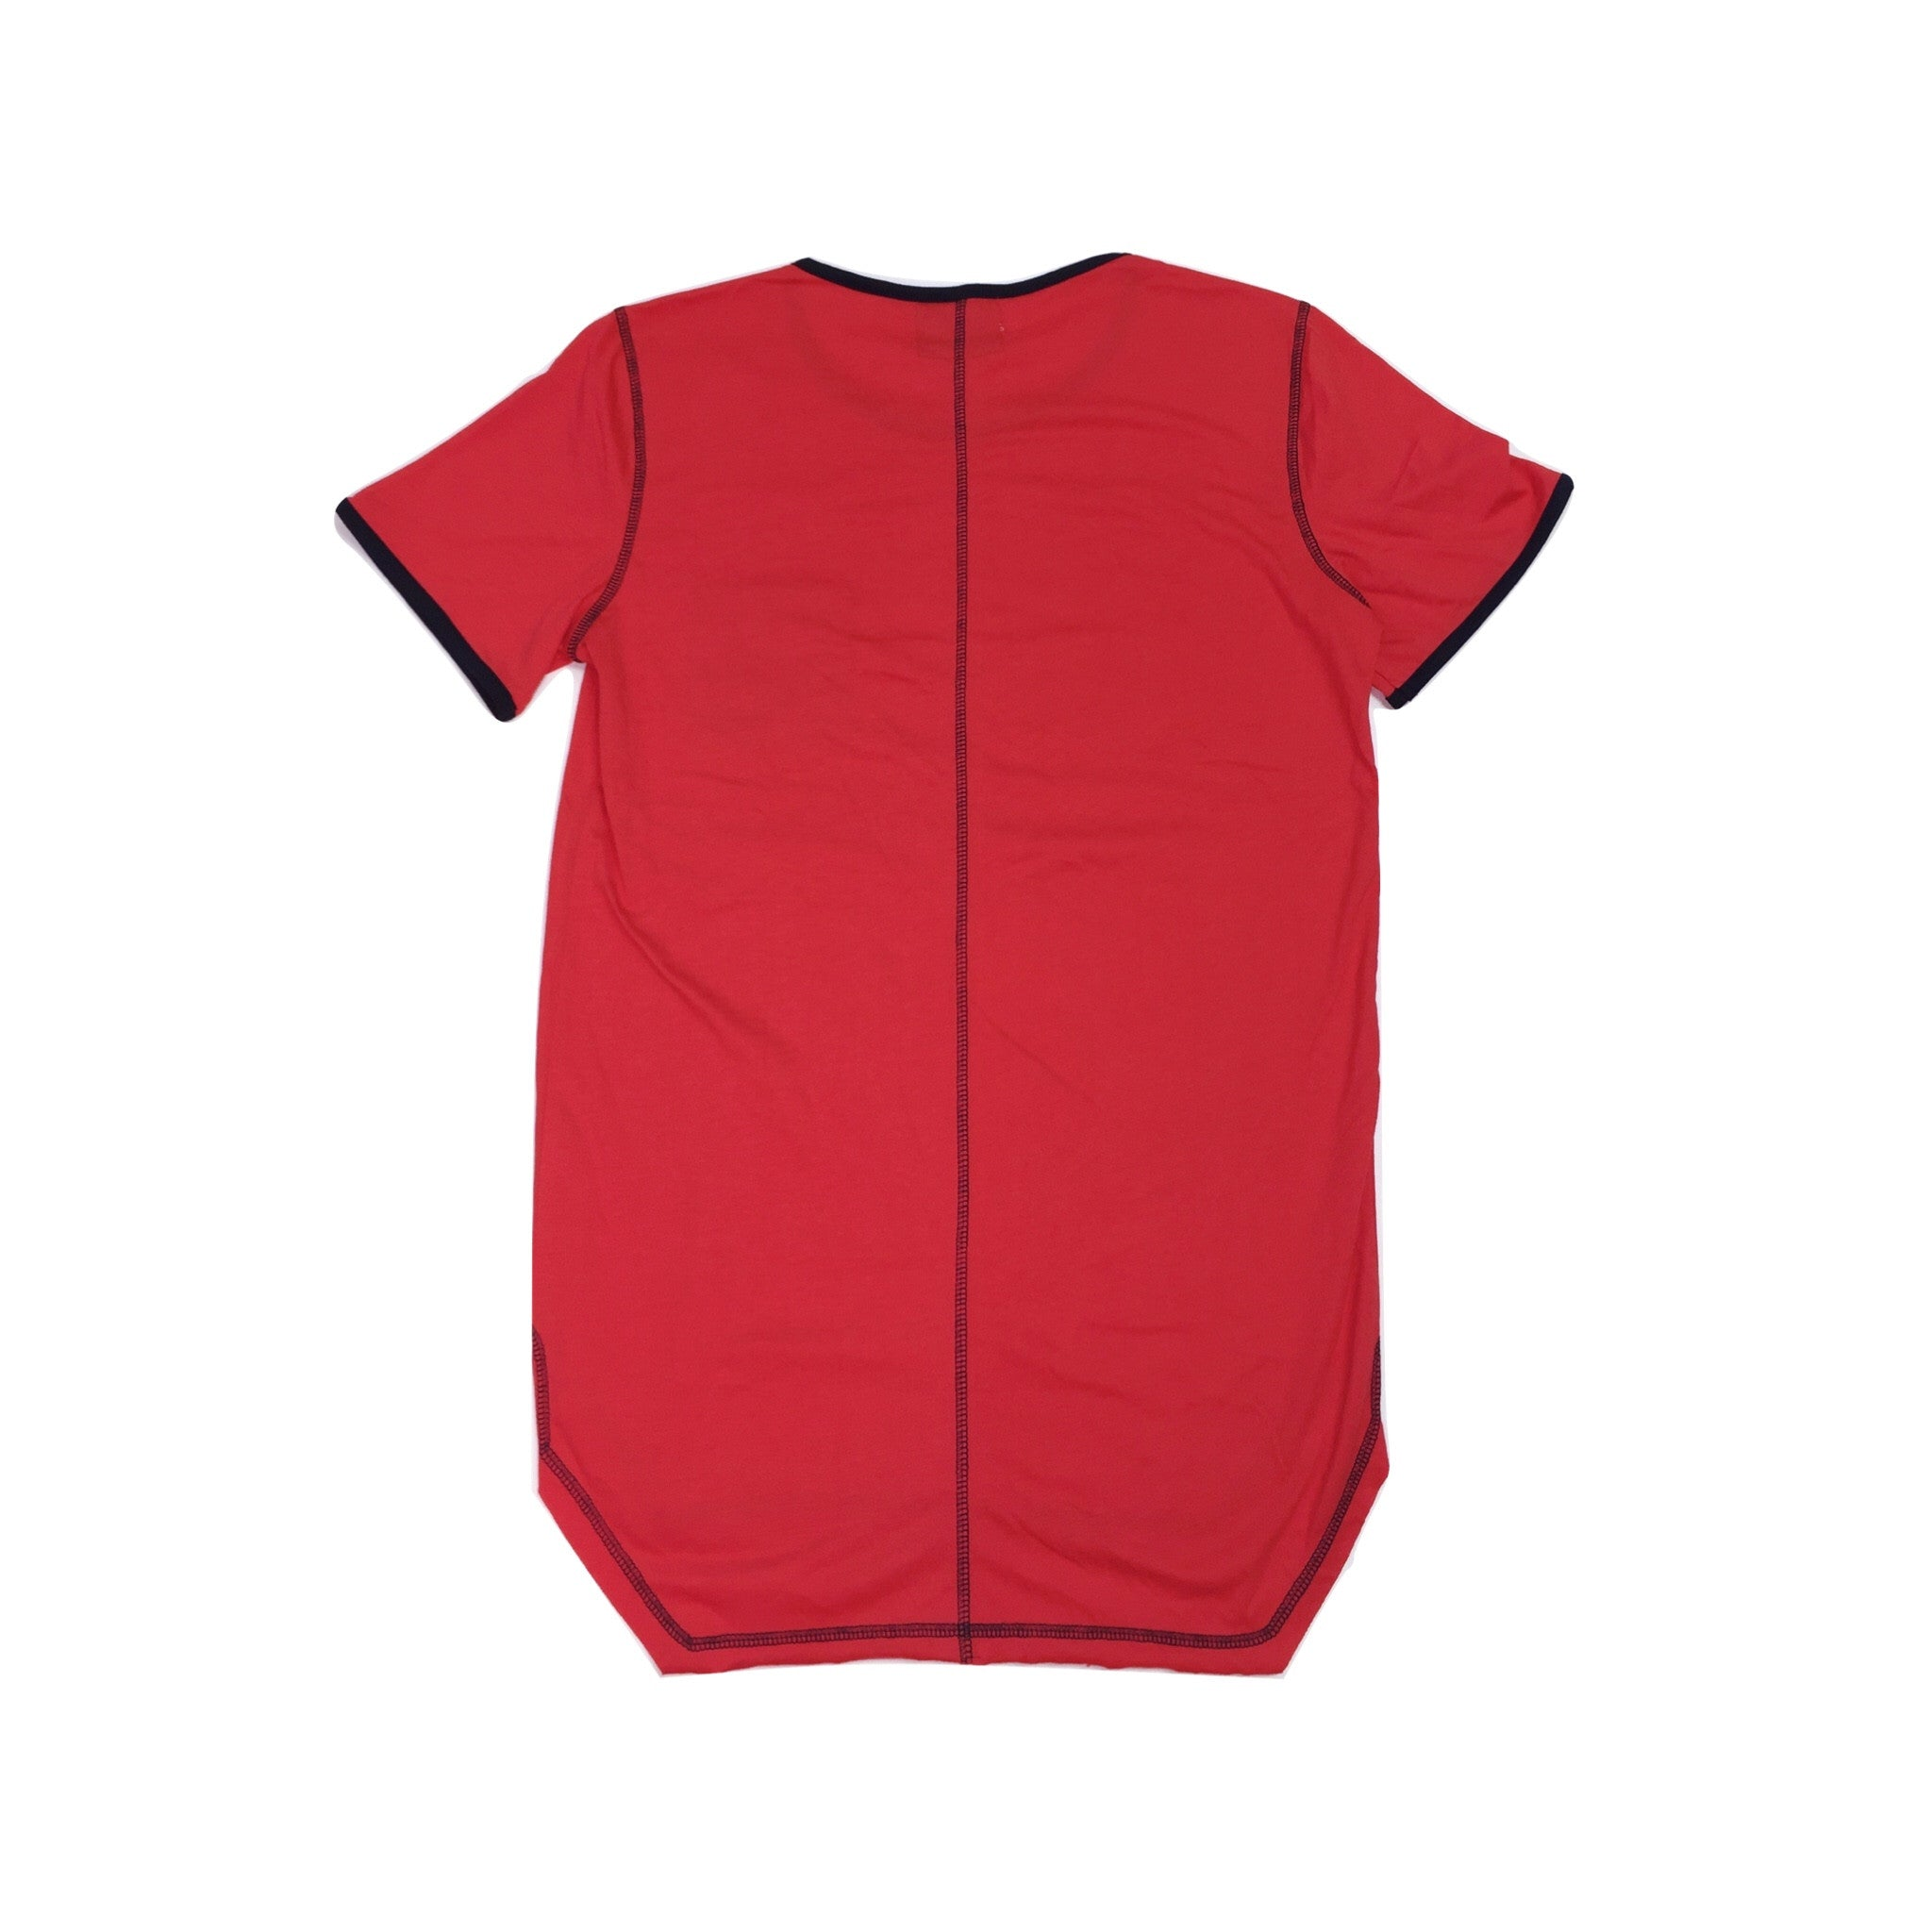 TORCHED POCKET TEE - RED - KONTROLLED SUBSTANCE